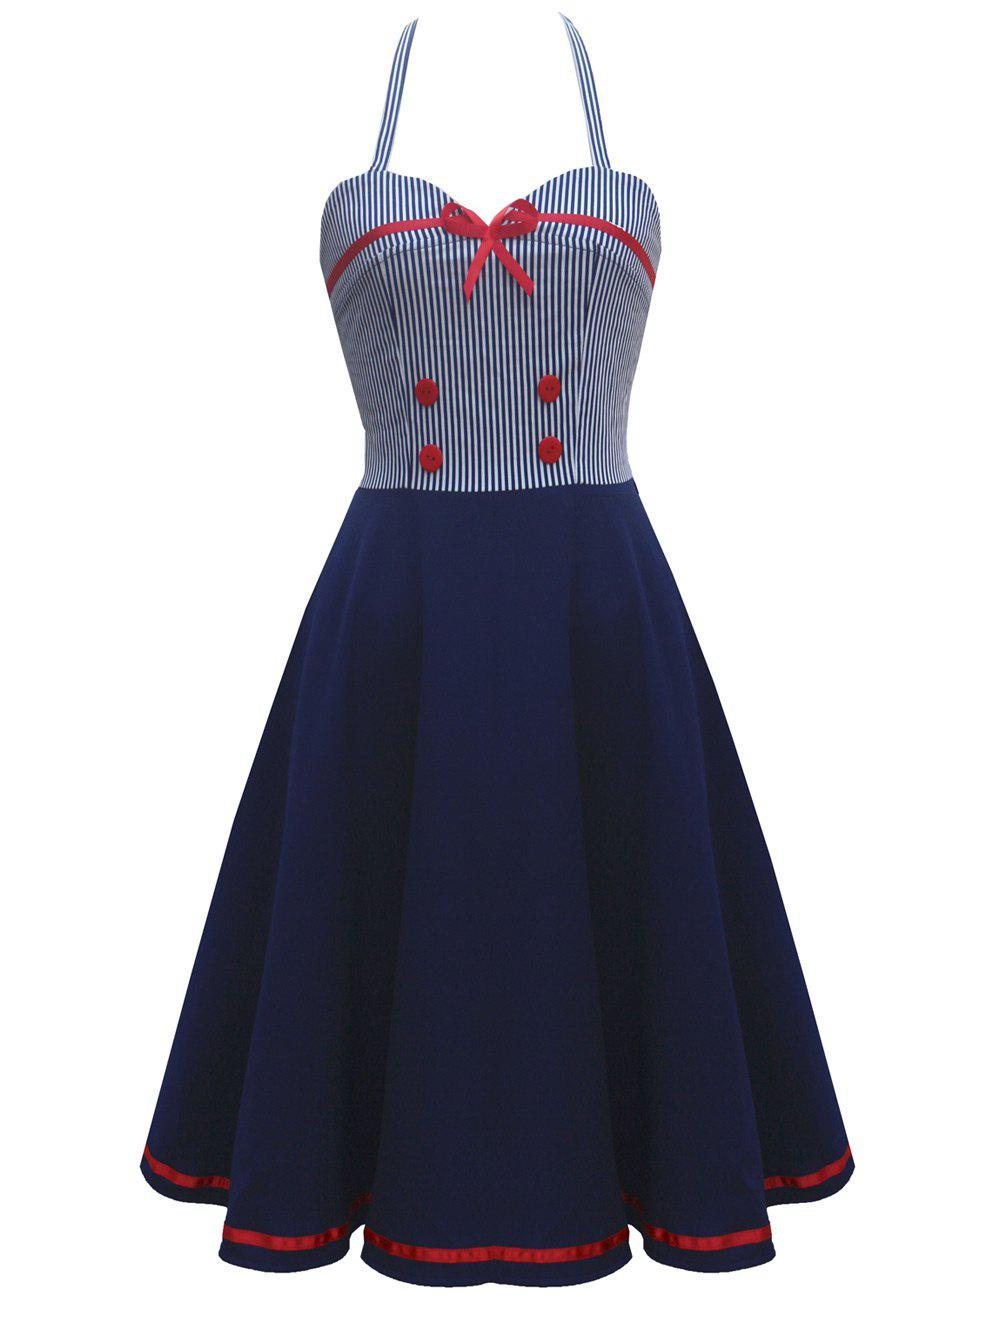 Vintage Contrast Buttoned Pinstripe Panel DressWOMEN<br><br>Size: S; Color: PURPLISH BLUE; Style: Vintage; Material: Polyester; Silhouette: A-Line; Dresses Length: Knee-Length; Neckline: Halter; Sleeve Length: Sleeveless; Pattern Type: Patchwork; With Belt: No; Season: Spring,Summer; Weight: 0.4000kg; Package Contents: 1 x Dress;